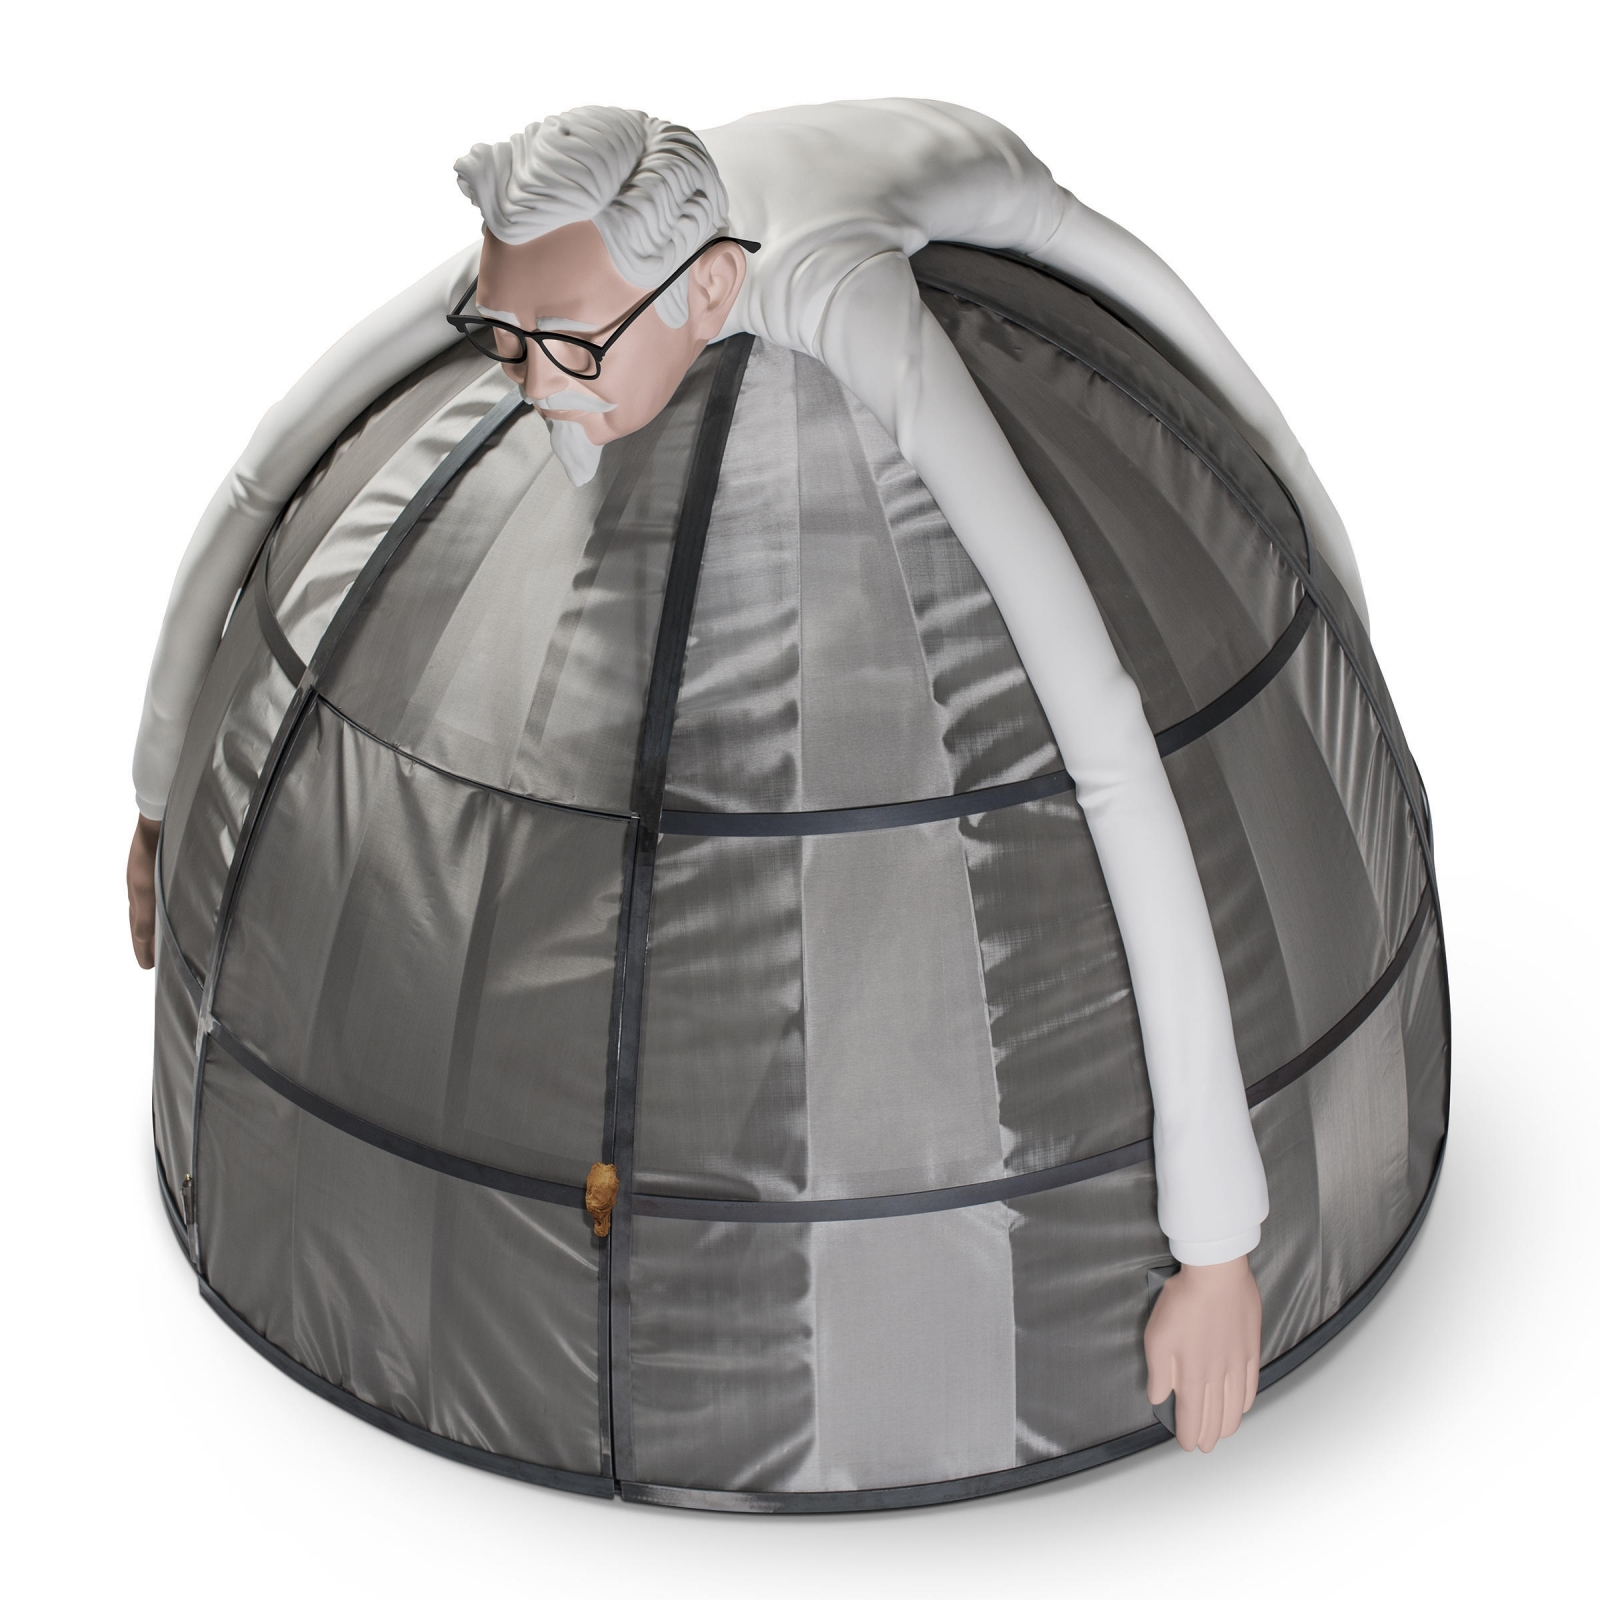 KFC Internet Escape Pod